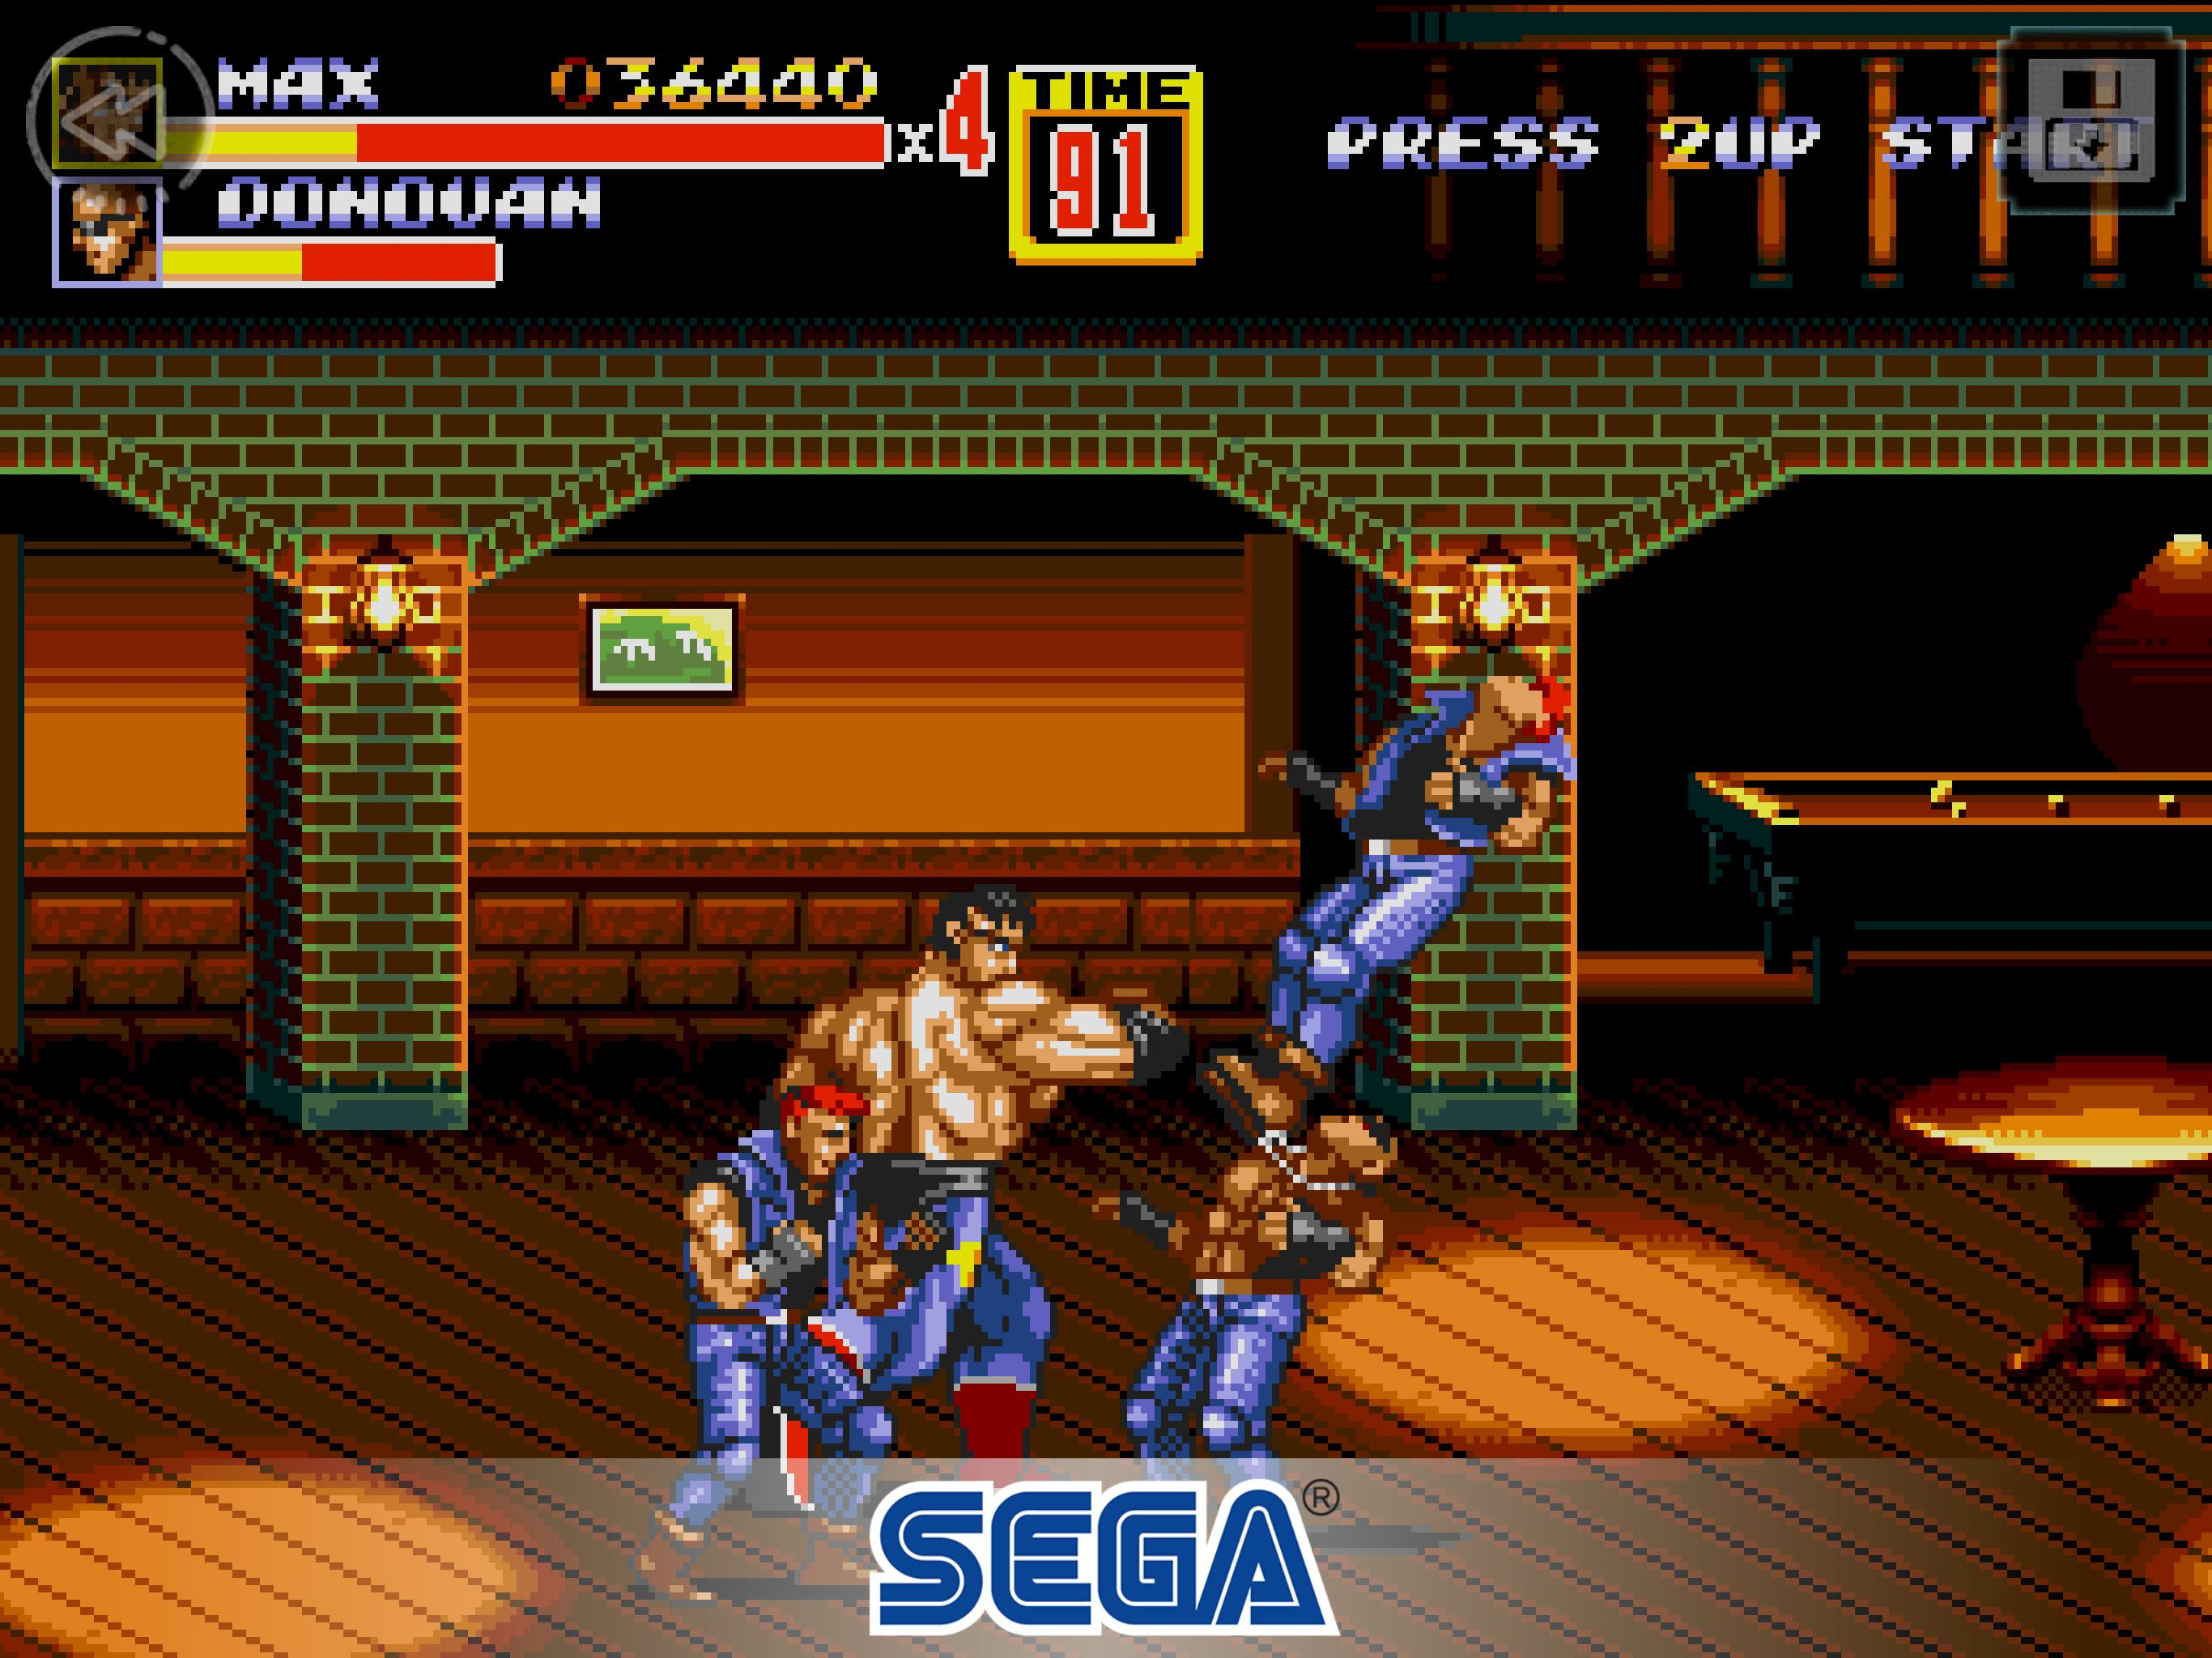 Free streets of rage 2 game online play free game playing with fire 2